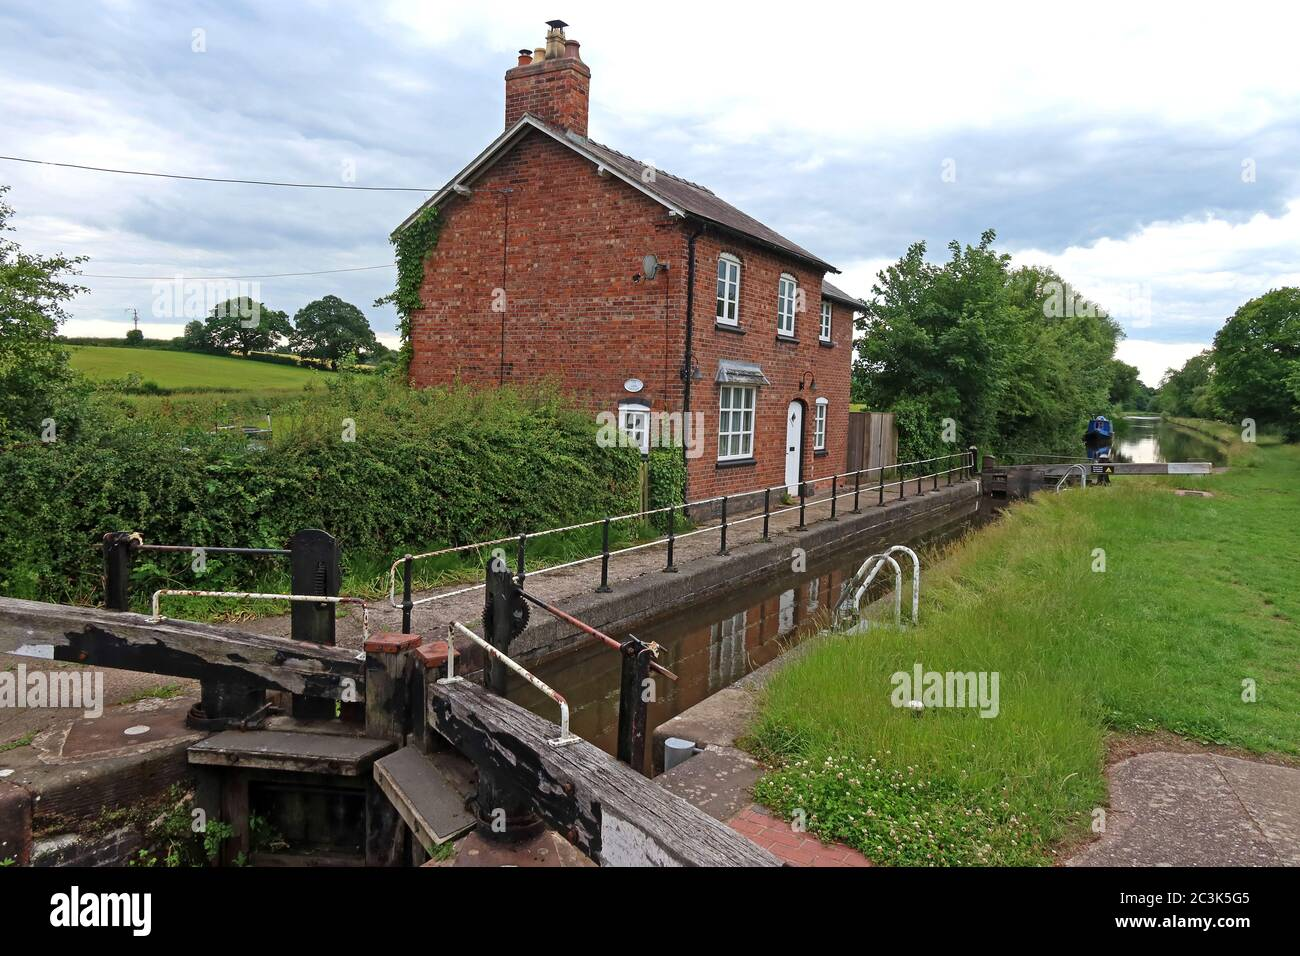 Marbury Lock No 10, Lock-keeper's Cottage, School Lane, Marbury, Whitchurch, Cheshire, England, UK,  SY13 4HS Stock Photo